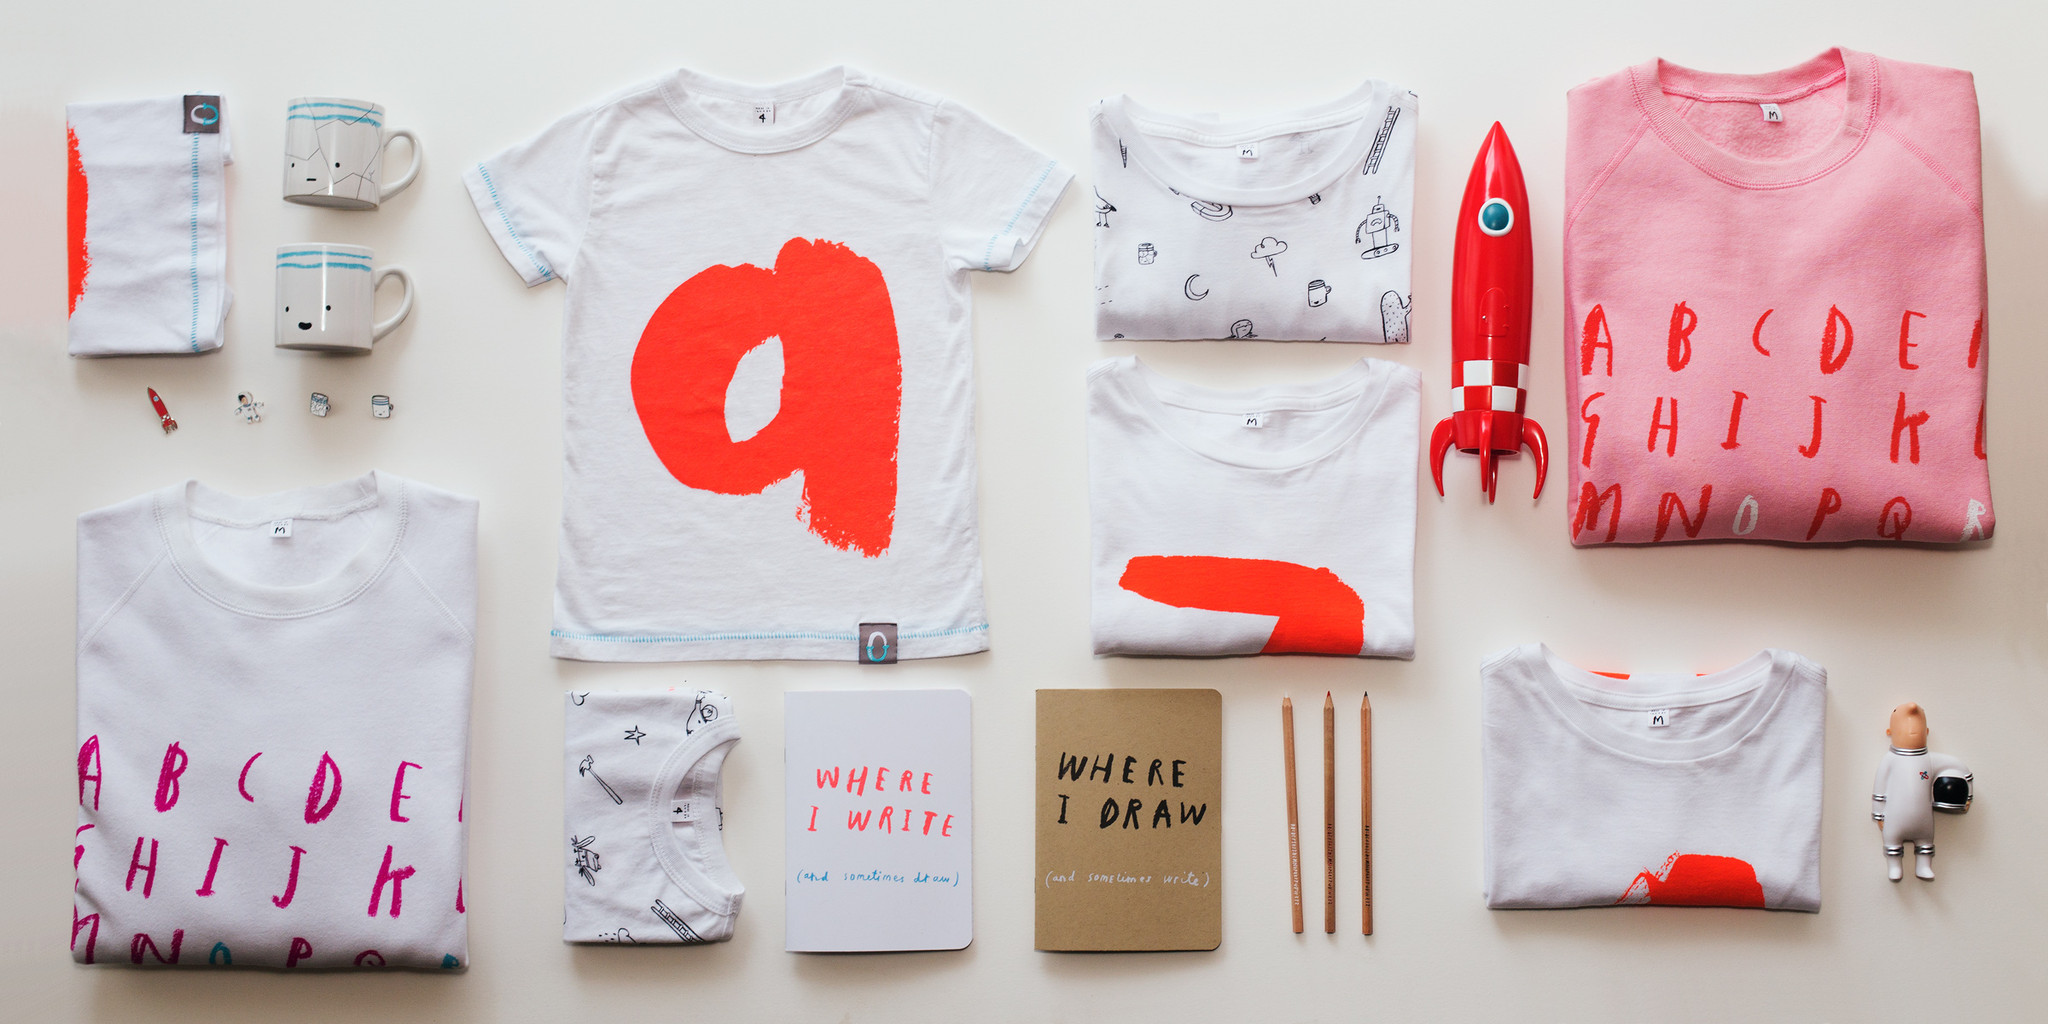 Oliver Jeffers Shopify Site